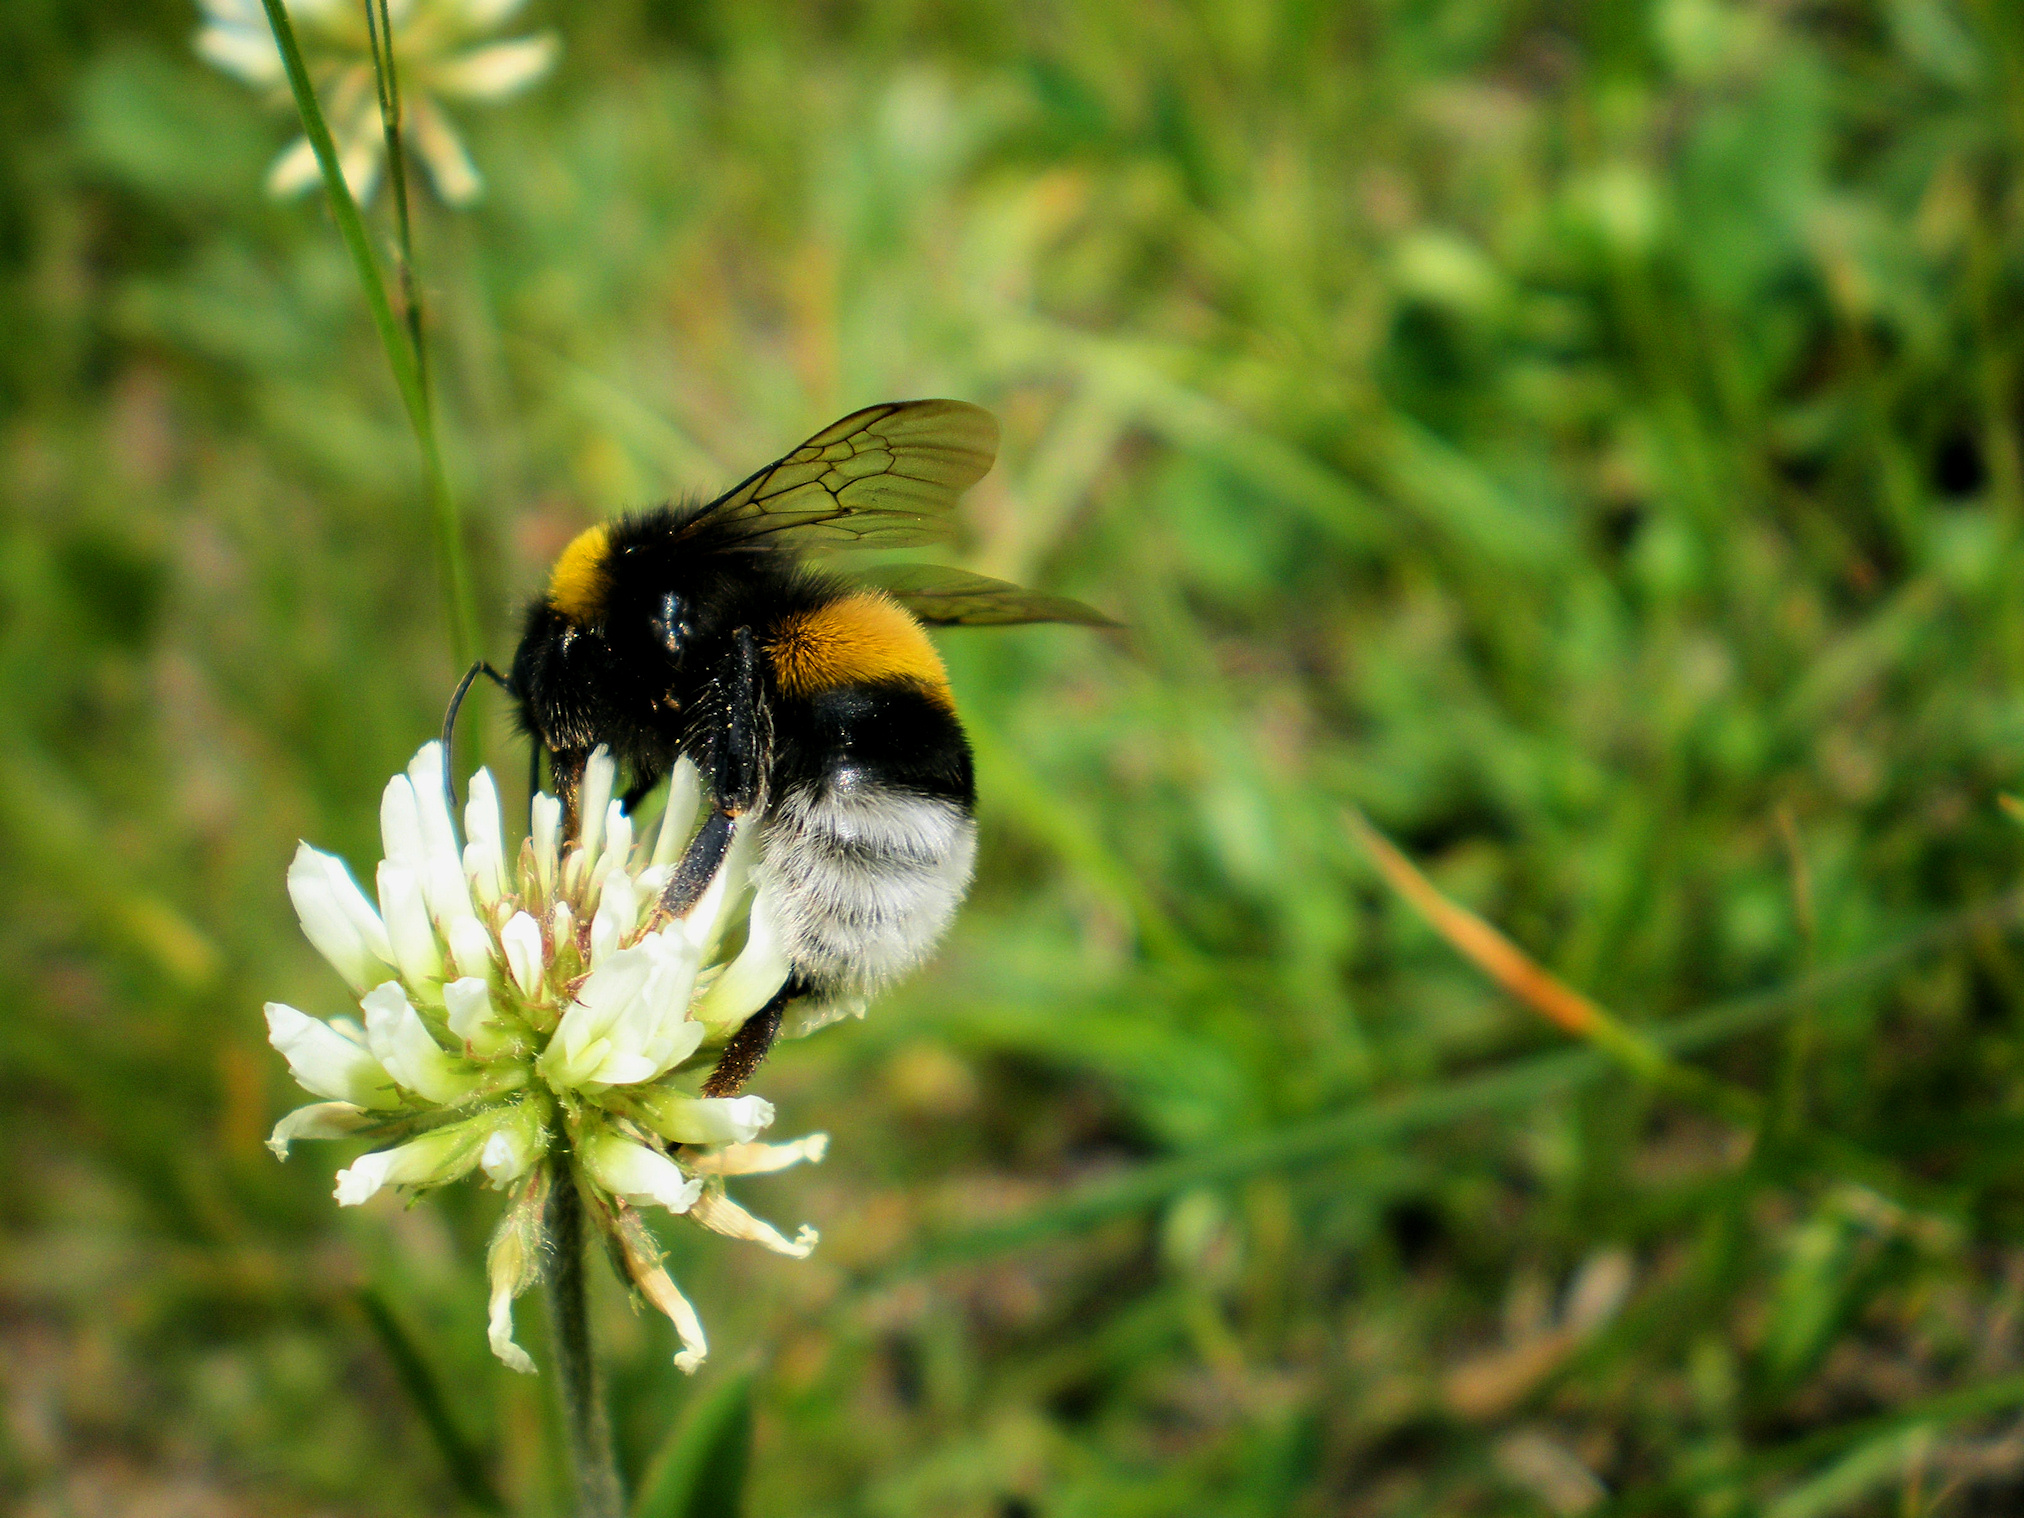 Bee, Animal, Flowers, Fly, Insect, HQ Photo